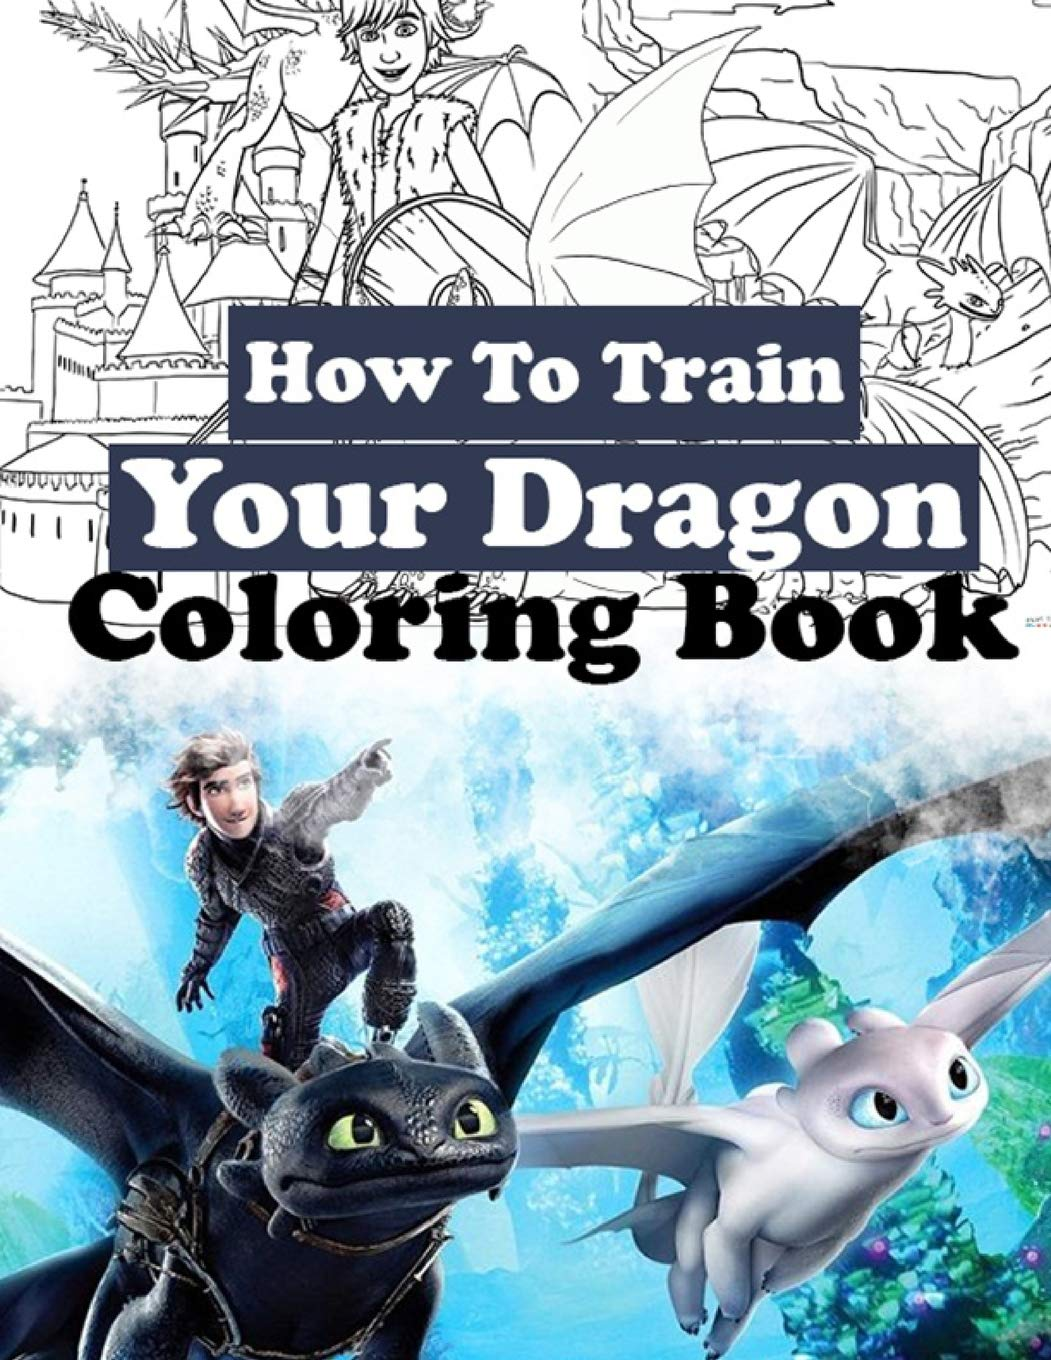 How To Train Your Dragon Coloring Book Coloring Book For Kids Ages 3 14 Amazon De Lane Mrs Rebica Fremdsprachige Bucher